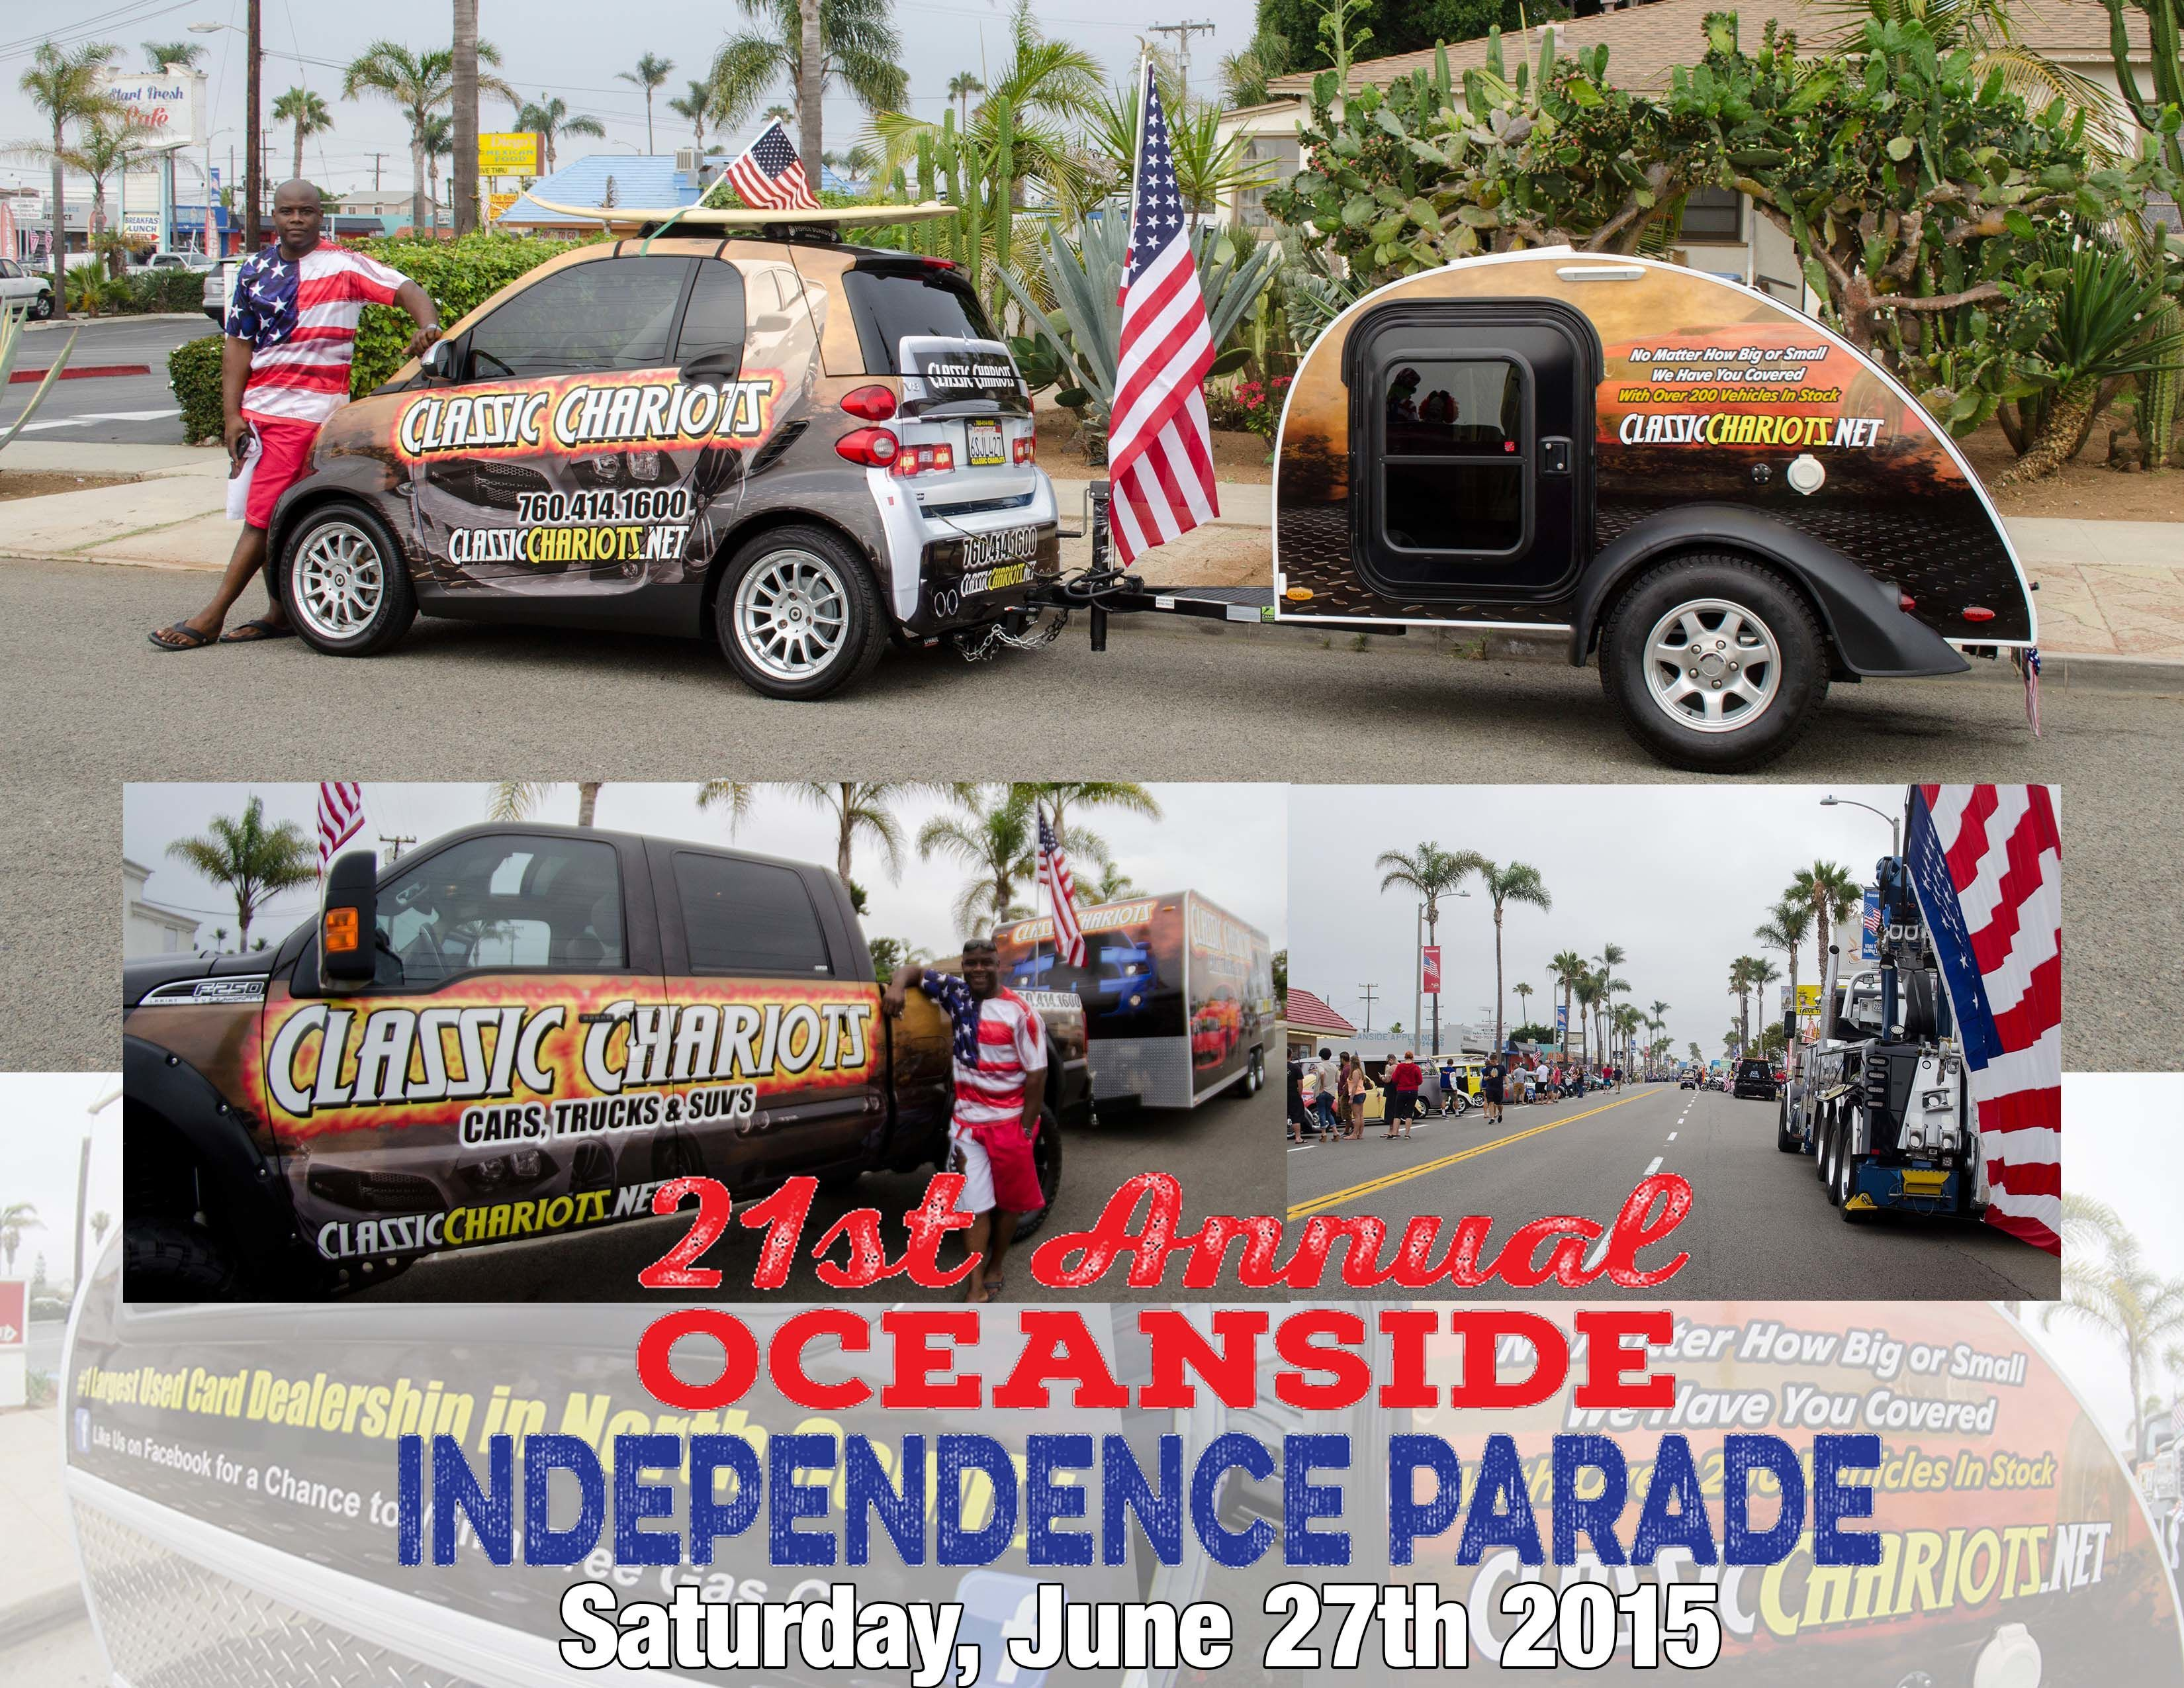 21st Annual Oceanside Independence Parade